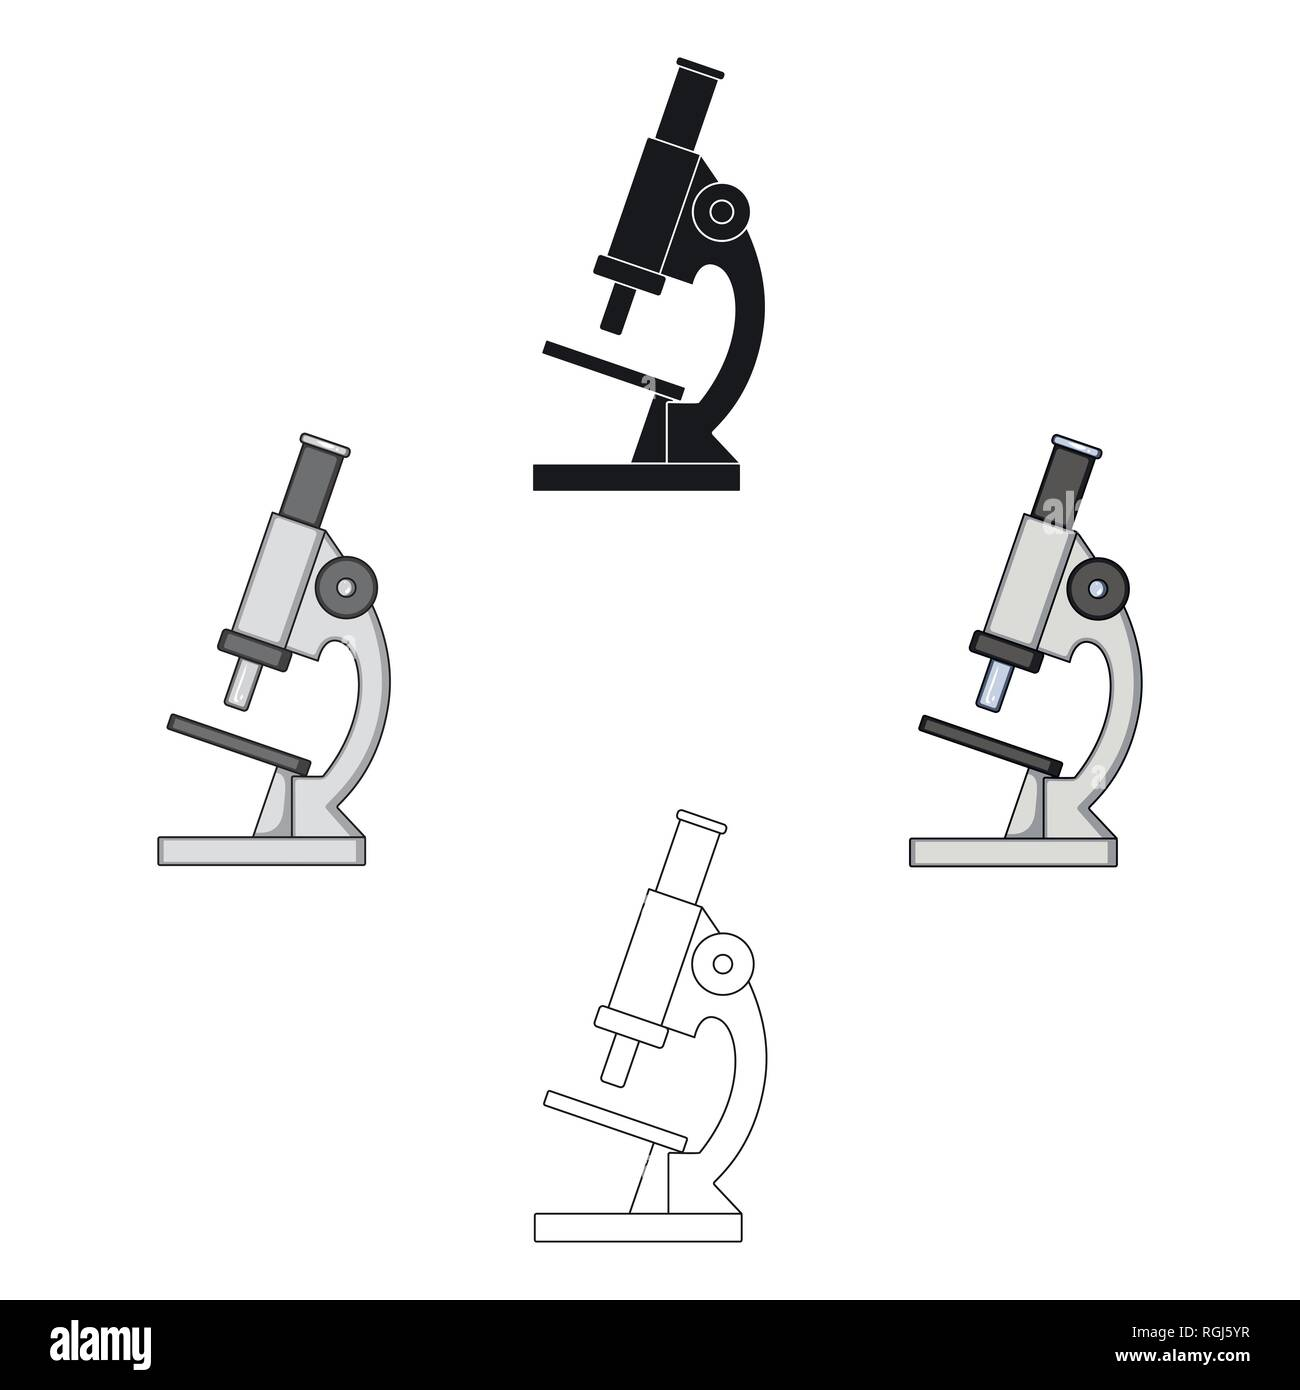 science experiment cartoon high resolution stock photography and images alamy https www alamy com analysisbiologycartoonchemistrydiscoveryeducationenlargeequipmentexperimentgraphiciconillustrationisolatedlablaboratorylenslogomagnifymedicalmedicinemicroscoperesearchschoolsciencescientificscientistsignsymboltechnologyvectorviruswebzoom vector vectors image233969115 html